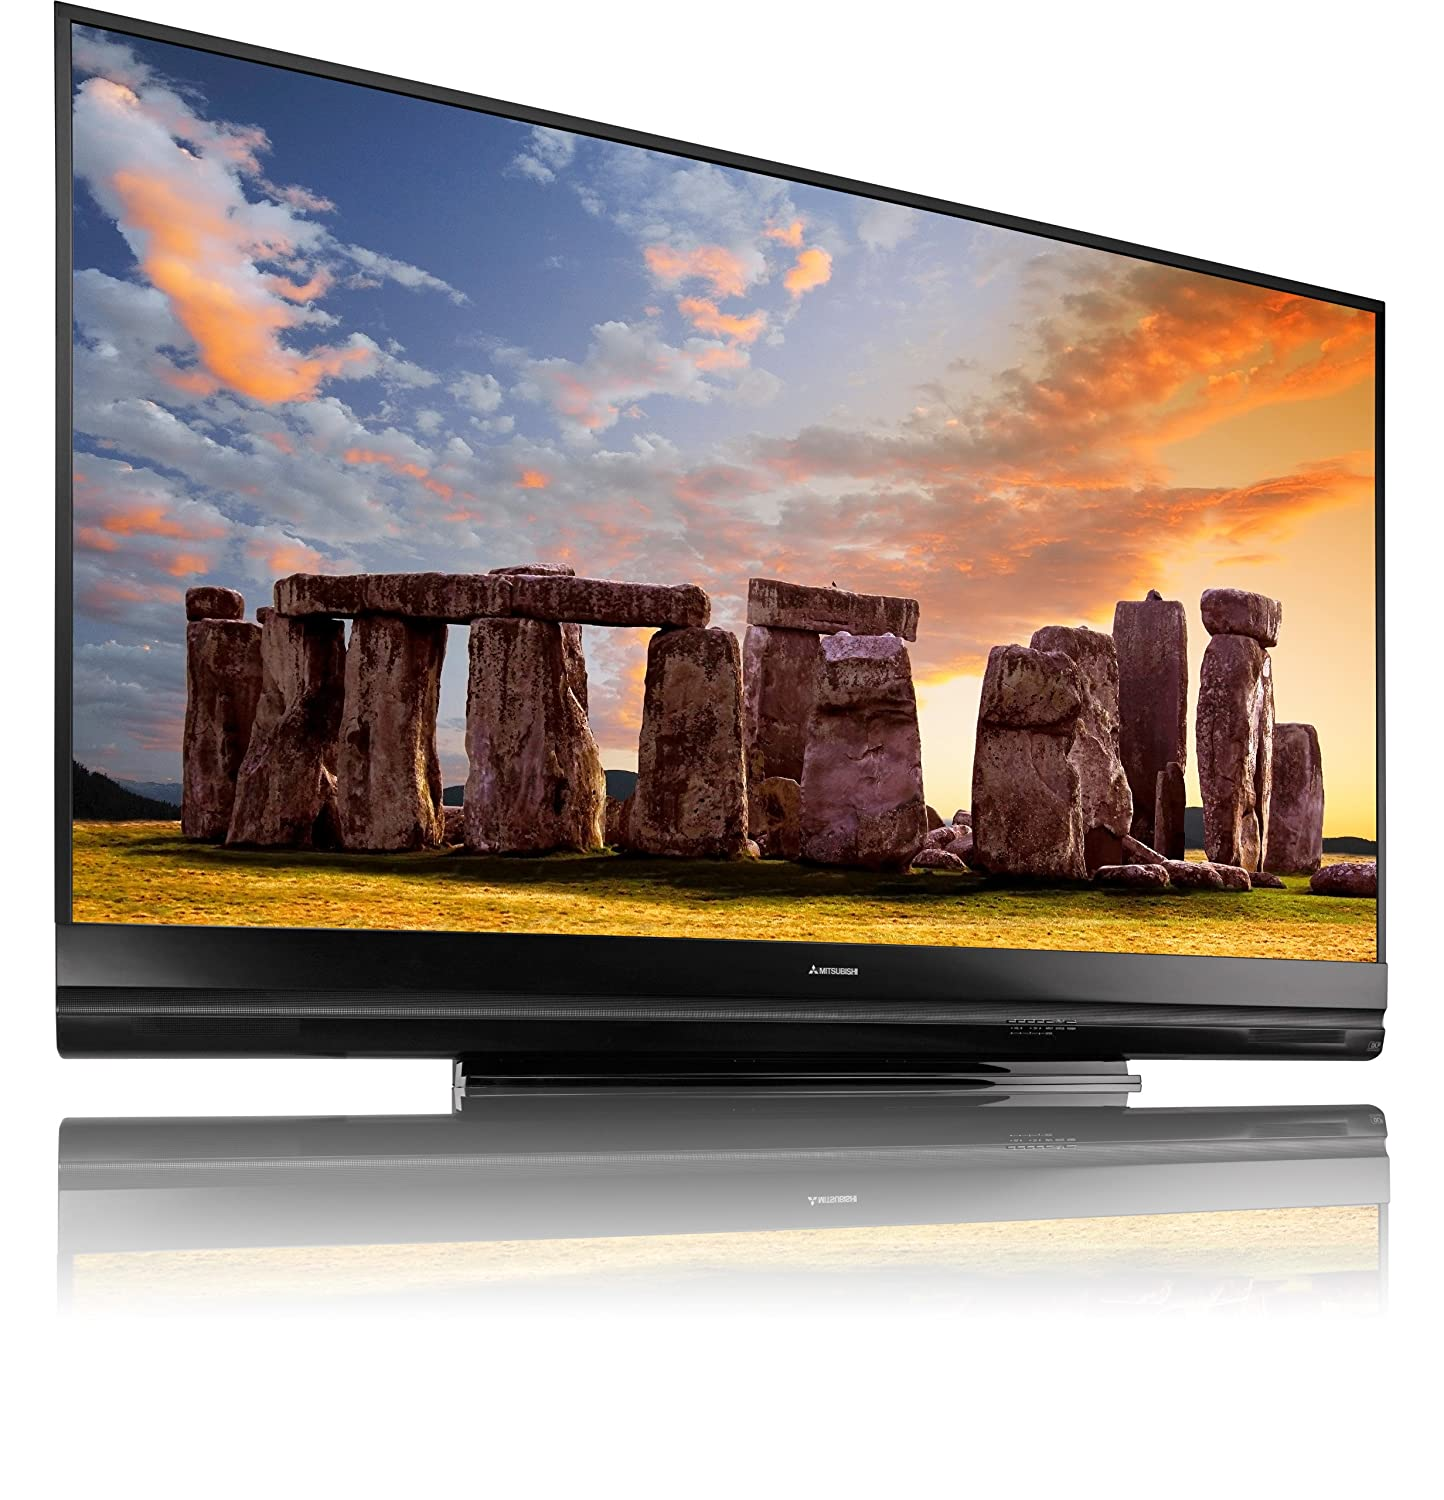 91e%2BD50oeqL._SL1500_ amazon com mitsubishi wd 82742 82 inch 3d dlp home cinema hdtv  at creativeand.co